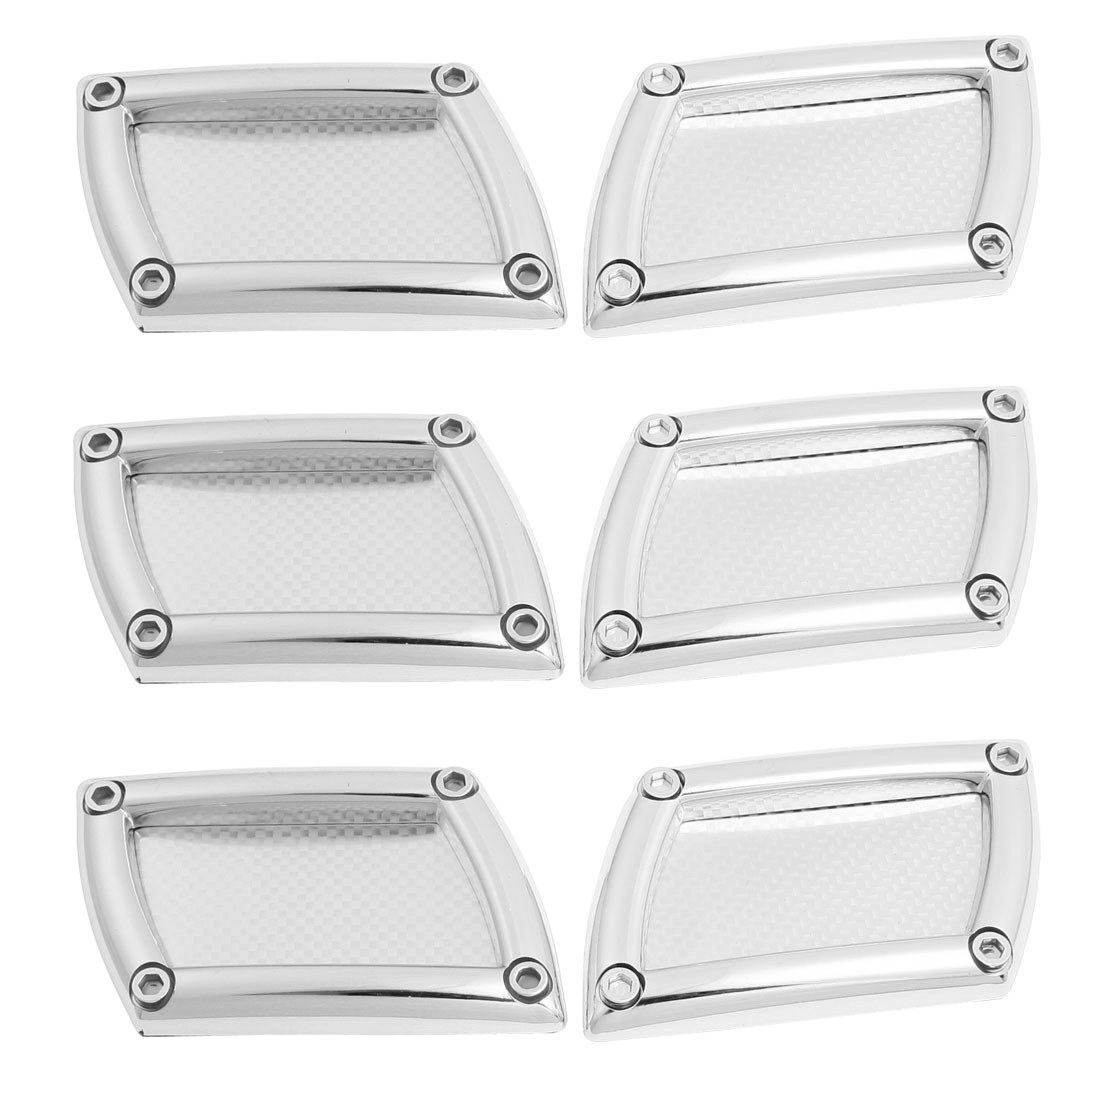 6 Pcs Silver Tone Plastic Rhombic Car Air Flow Fender Stickers